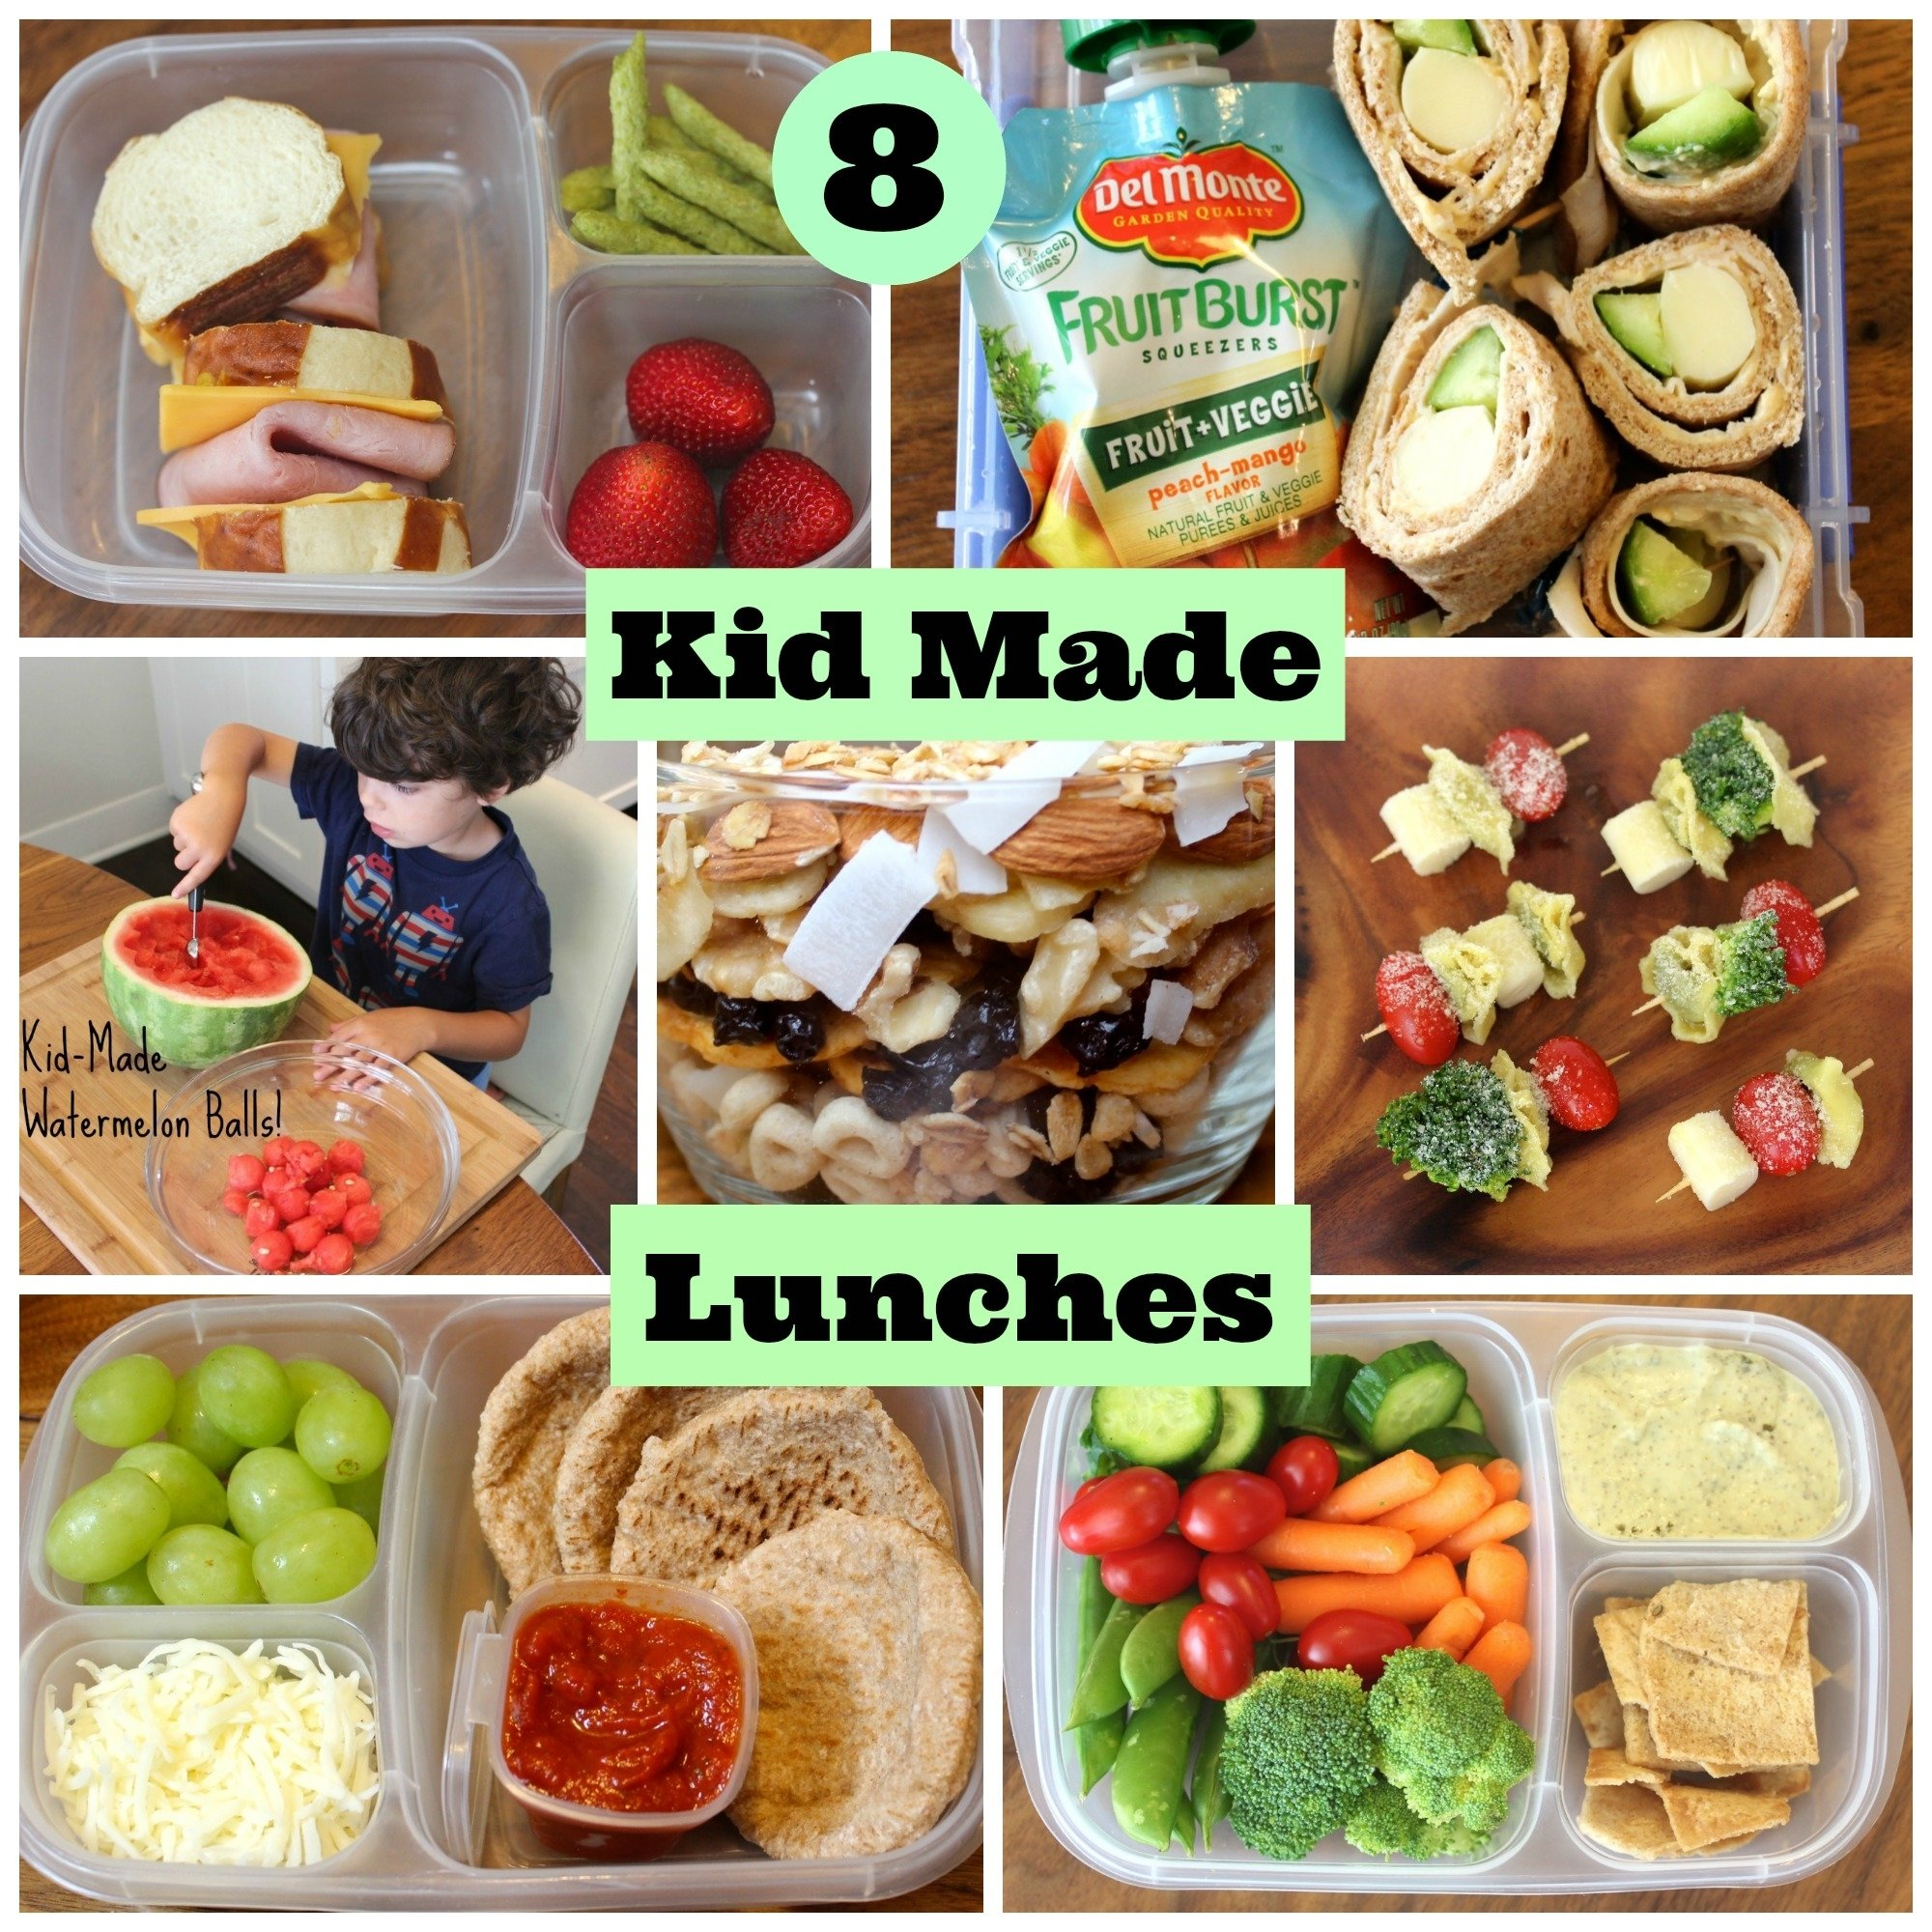 10 Nice Ideas For Kids Lunches For School 4 healthy school lunches your kids can make themselves babble 4 2020